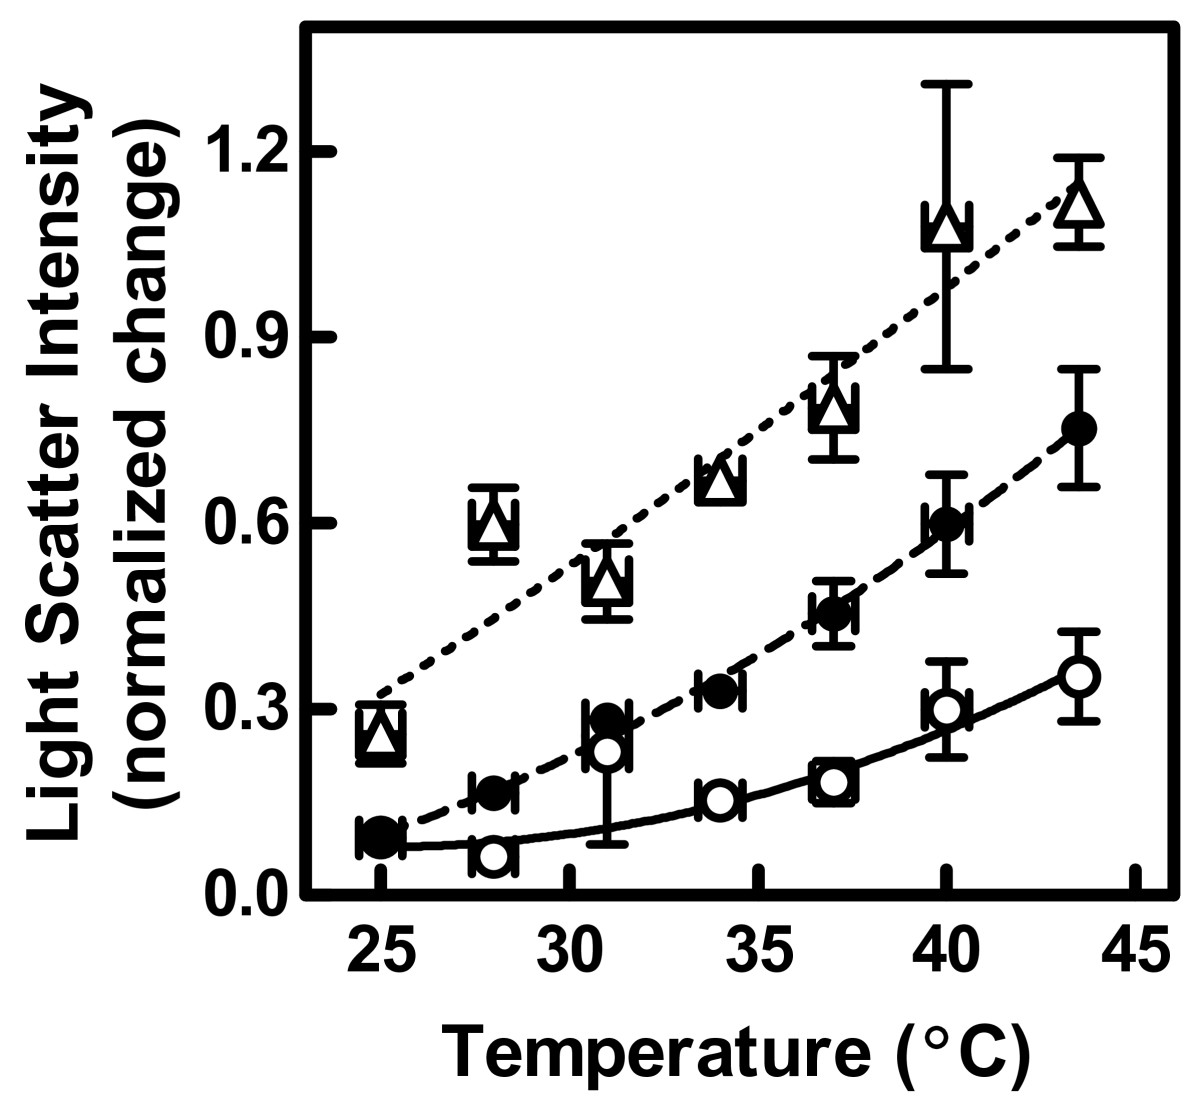 betalain effect of temperature membrane Effect of environmental stress on beetroot cell membranes hypotheses high temperatures should denature (change the shape of) the proteins in the beetroot membranes thus the longer the beetroot is left in the chemical solution, the more cells would be affected, and the more betalain would leak out.